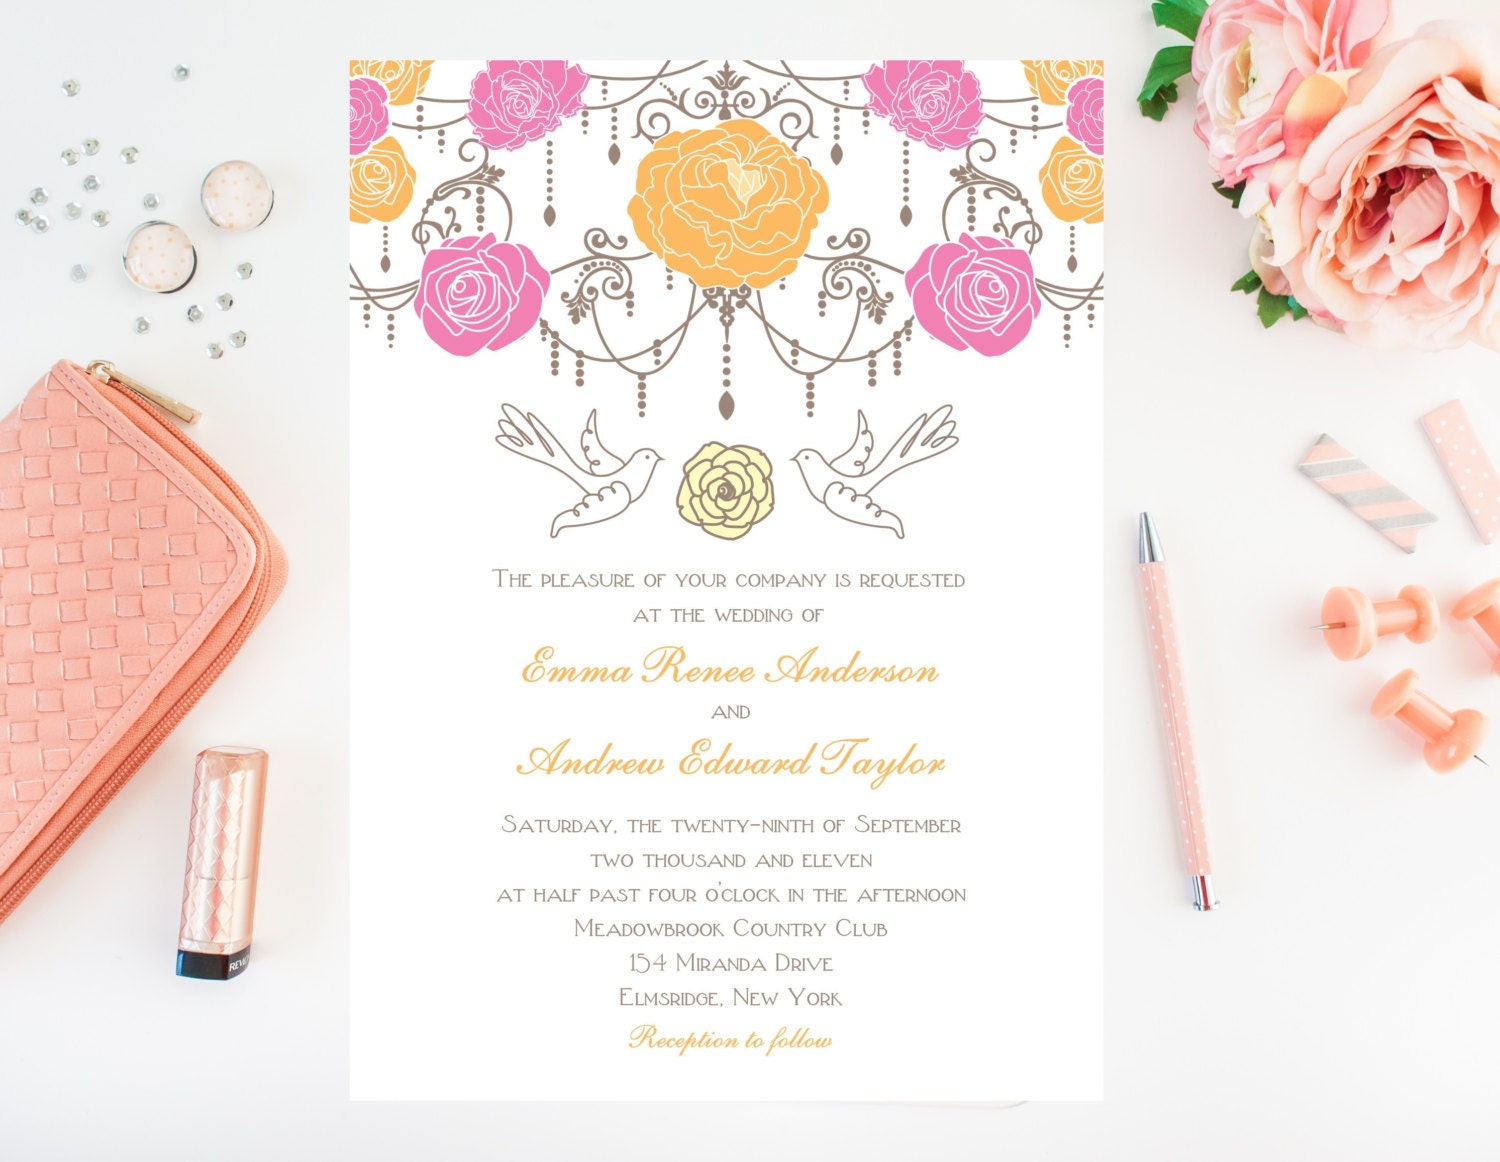 Chandelier Wedding Invitations: Rose Flower Chandelier Wedding Invitations By Whimsicalprints